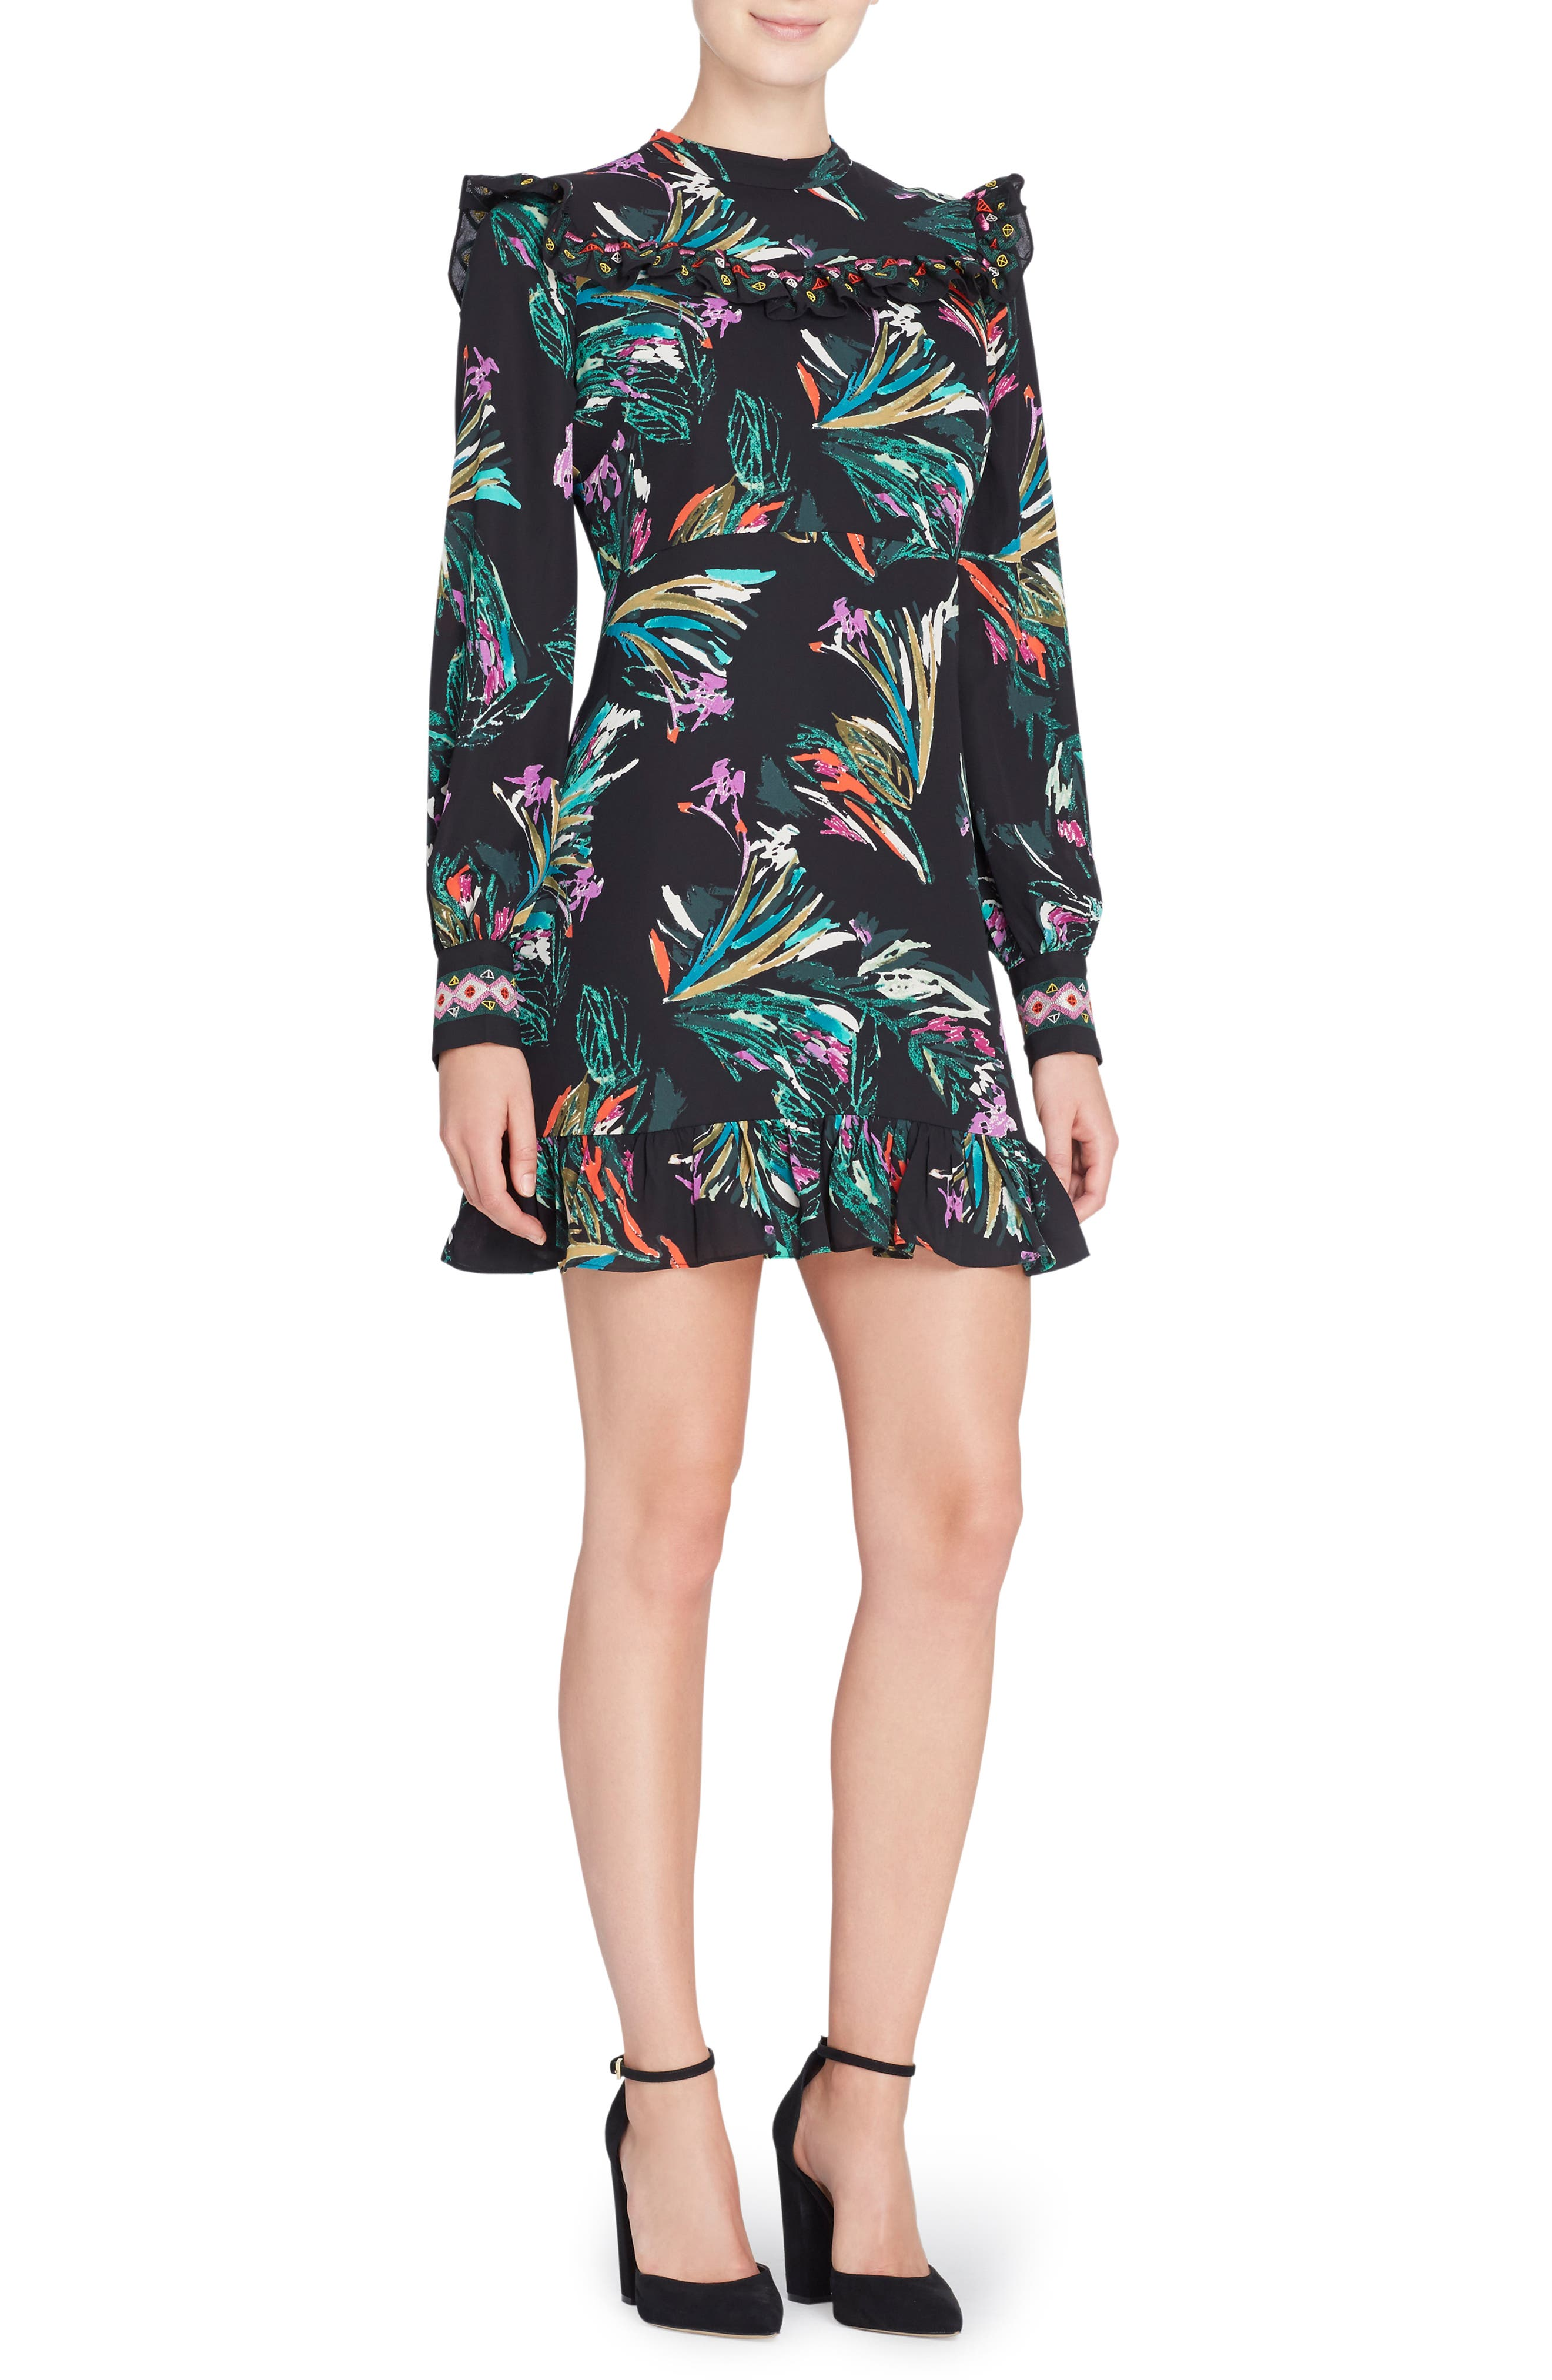 CATHERINE CATHERINE MALANDRINO Florence Embroidered Cuff Dress